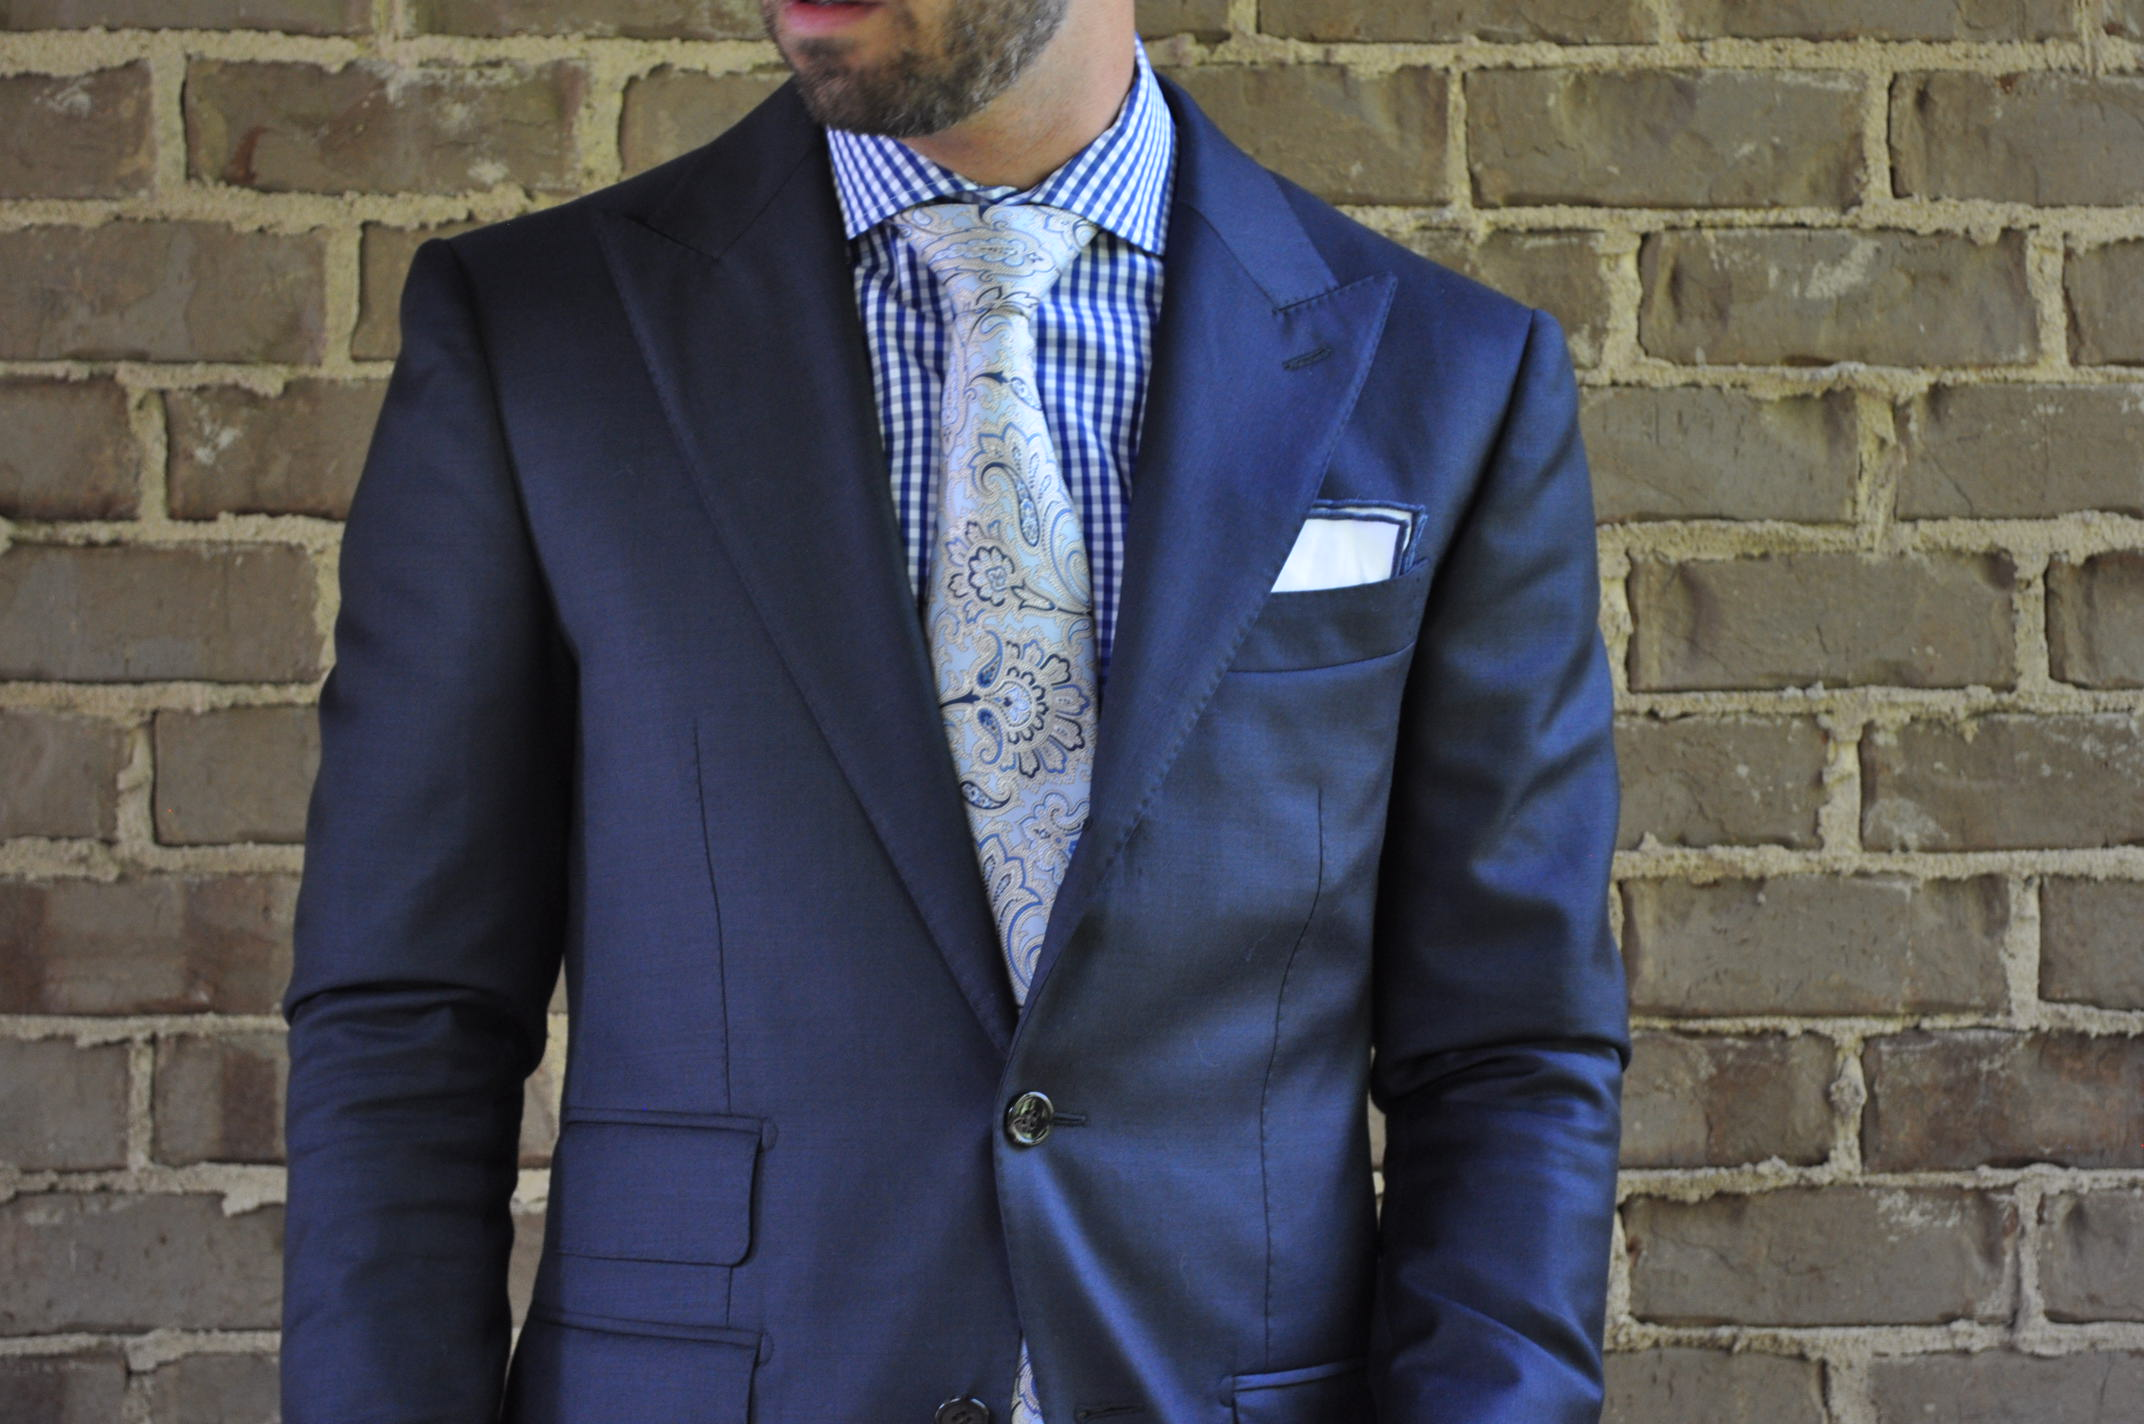 Here the shirt and tie are loud, but the same pocket square works as a simple accent. -